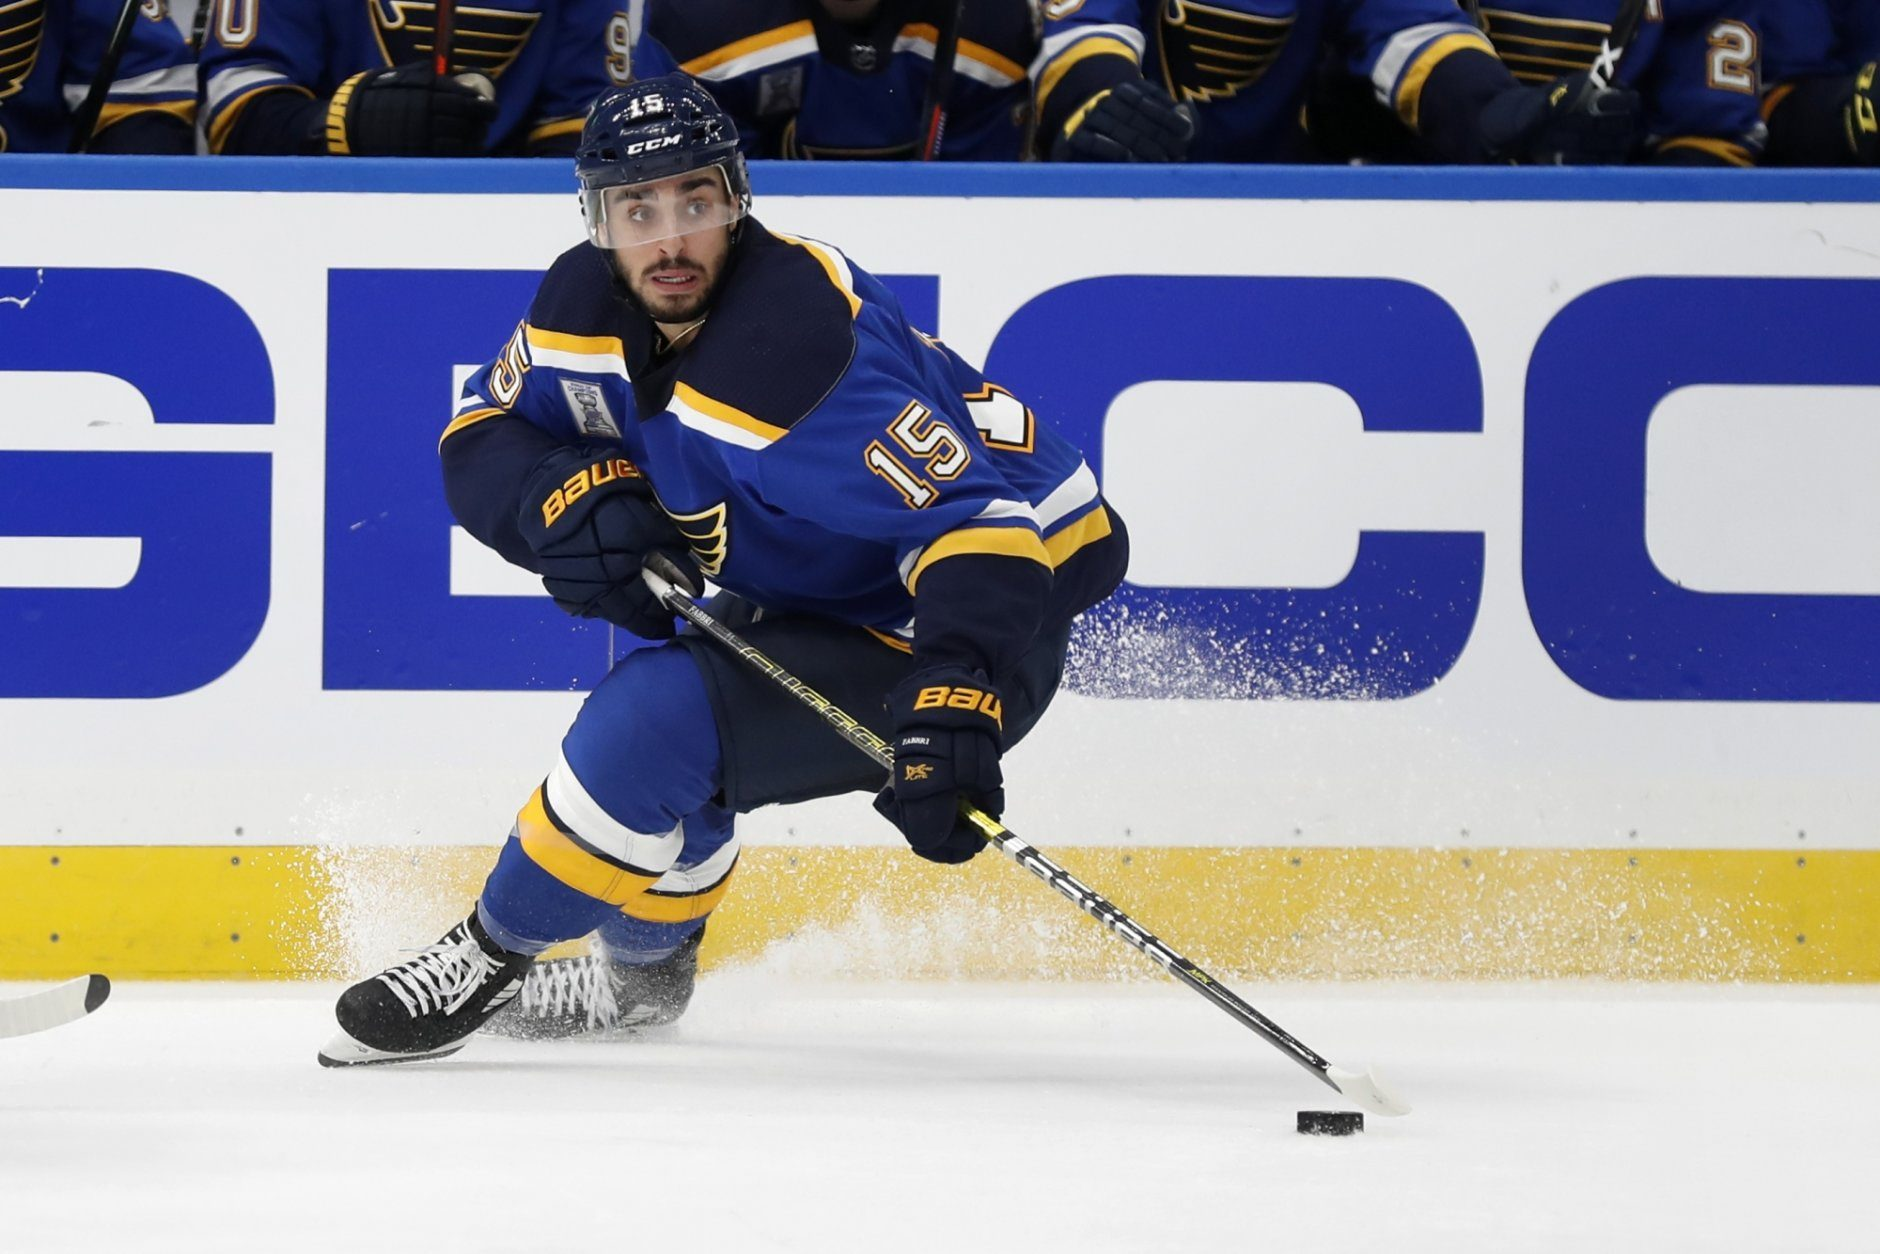 St. Louis Blues' Robby Fabbri handles the puck during the second period of an NHL hockey game against the Washington Capitals Wednesday, Oct. 2, 2019, in St. Louis. (AP Photo/Jeff Roberson)